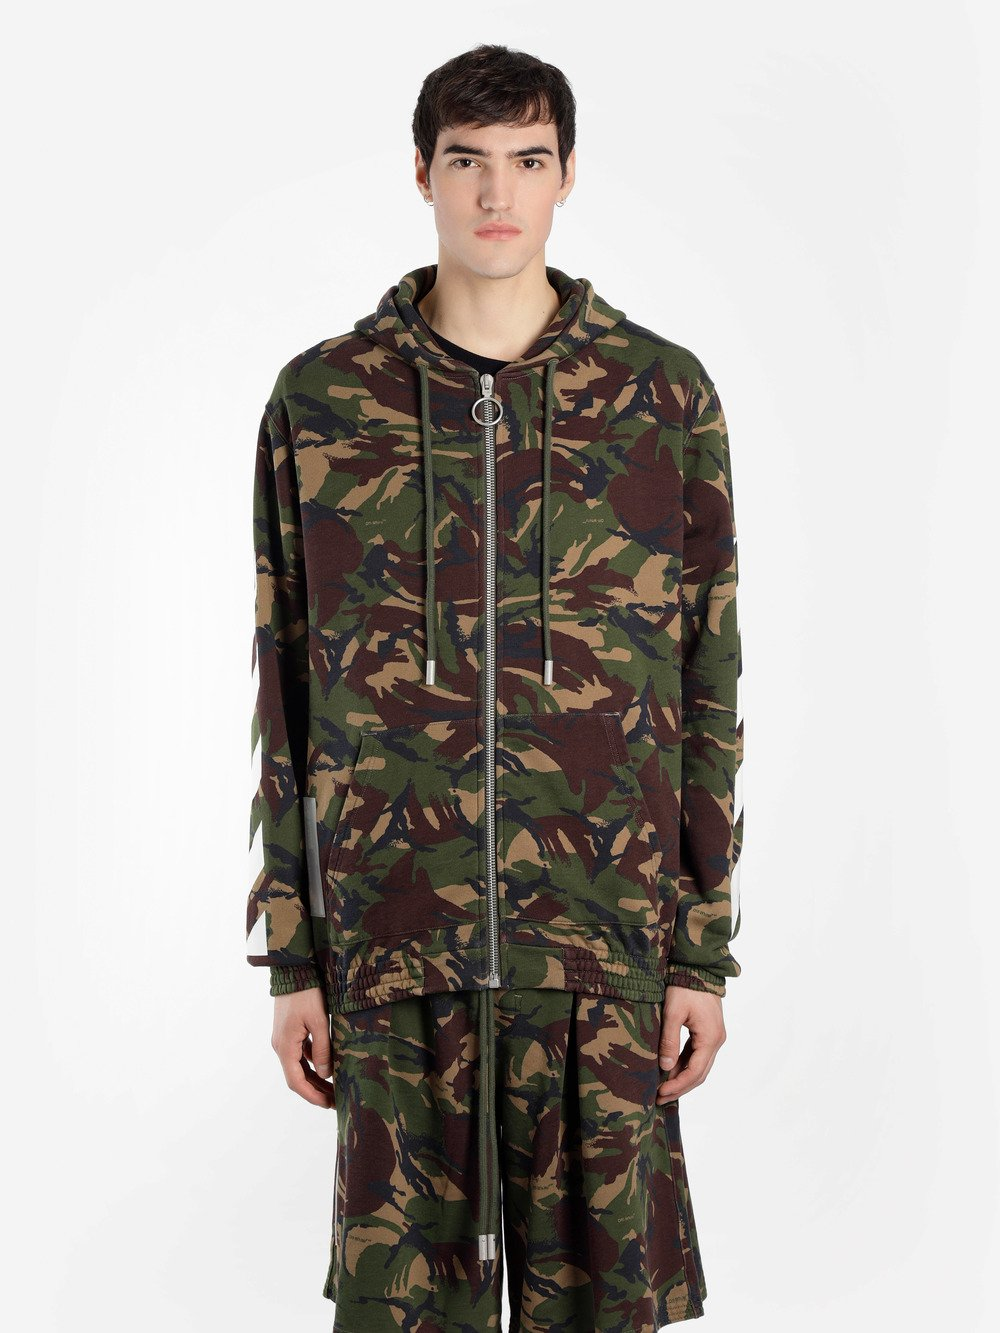 OFF WHITE C/O VIRGIL ABLOH MEN'S GREEN CAMOUFLAGE DIAG ZIPPED HOODIE